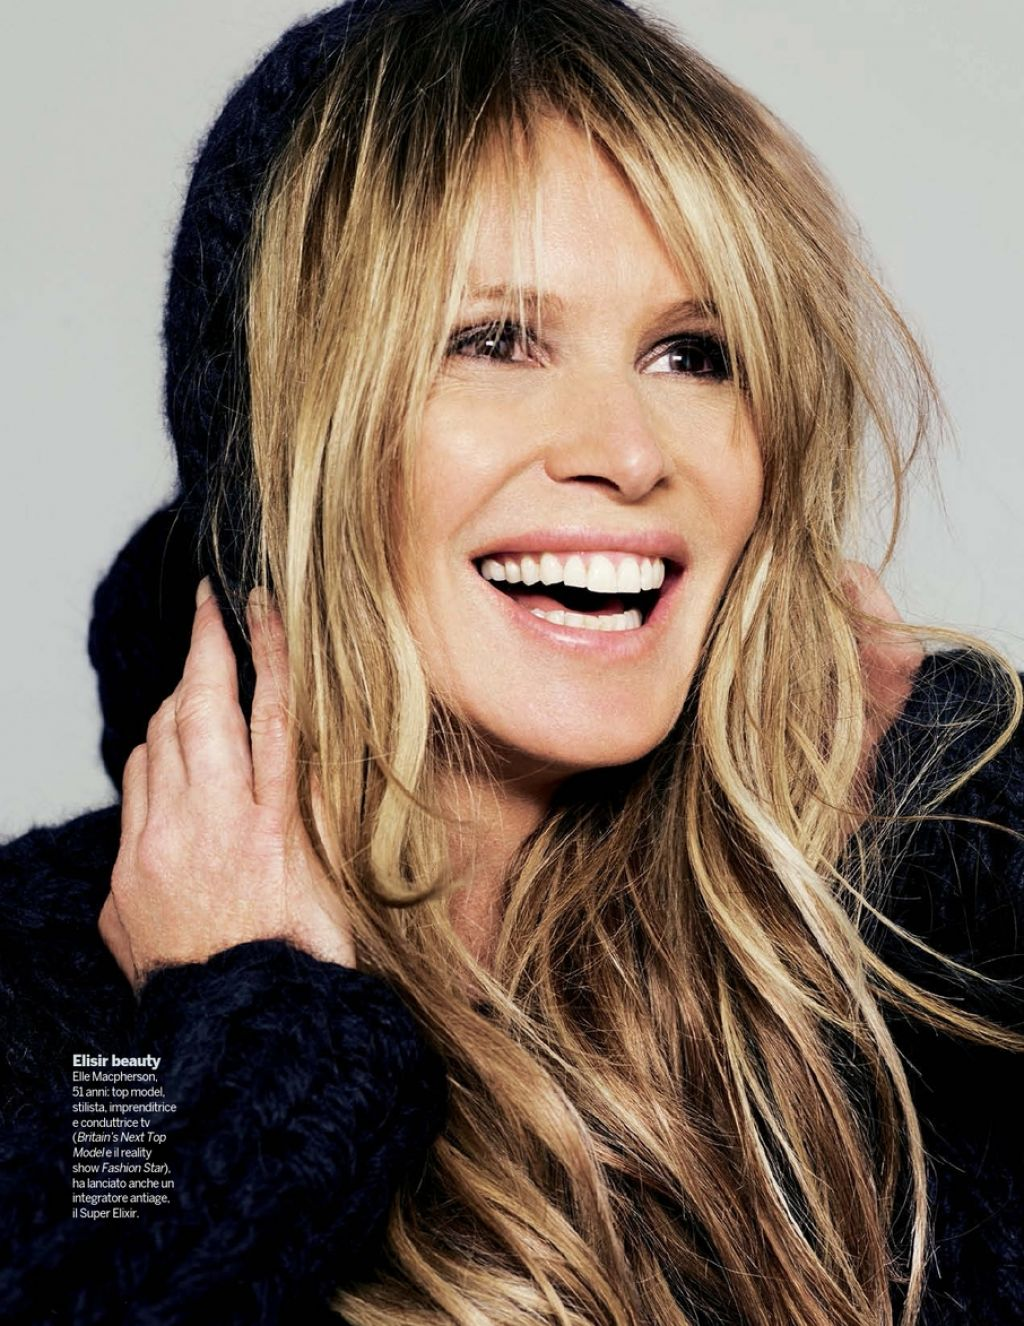 elle macpherson latest photos celebmafia On the elle